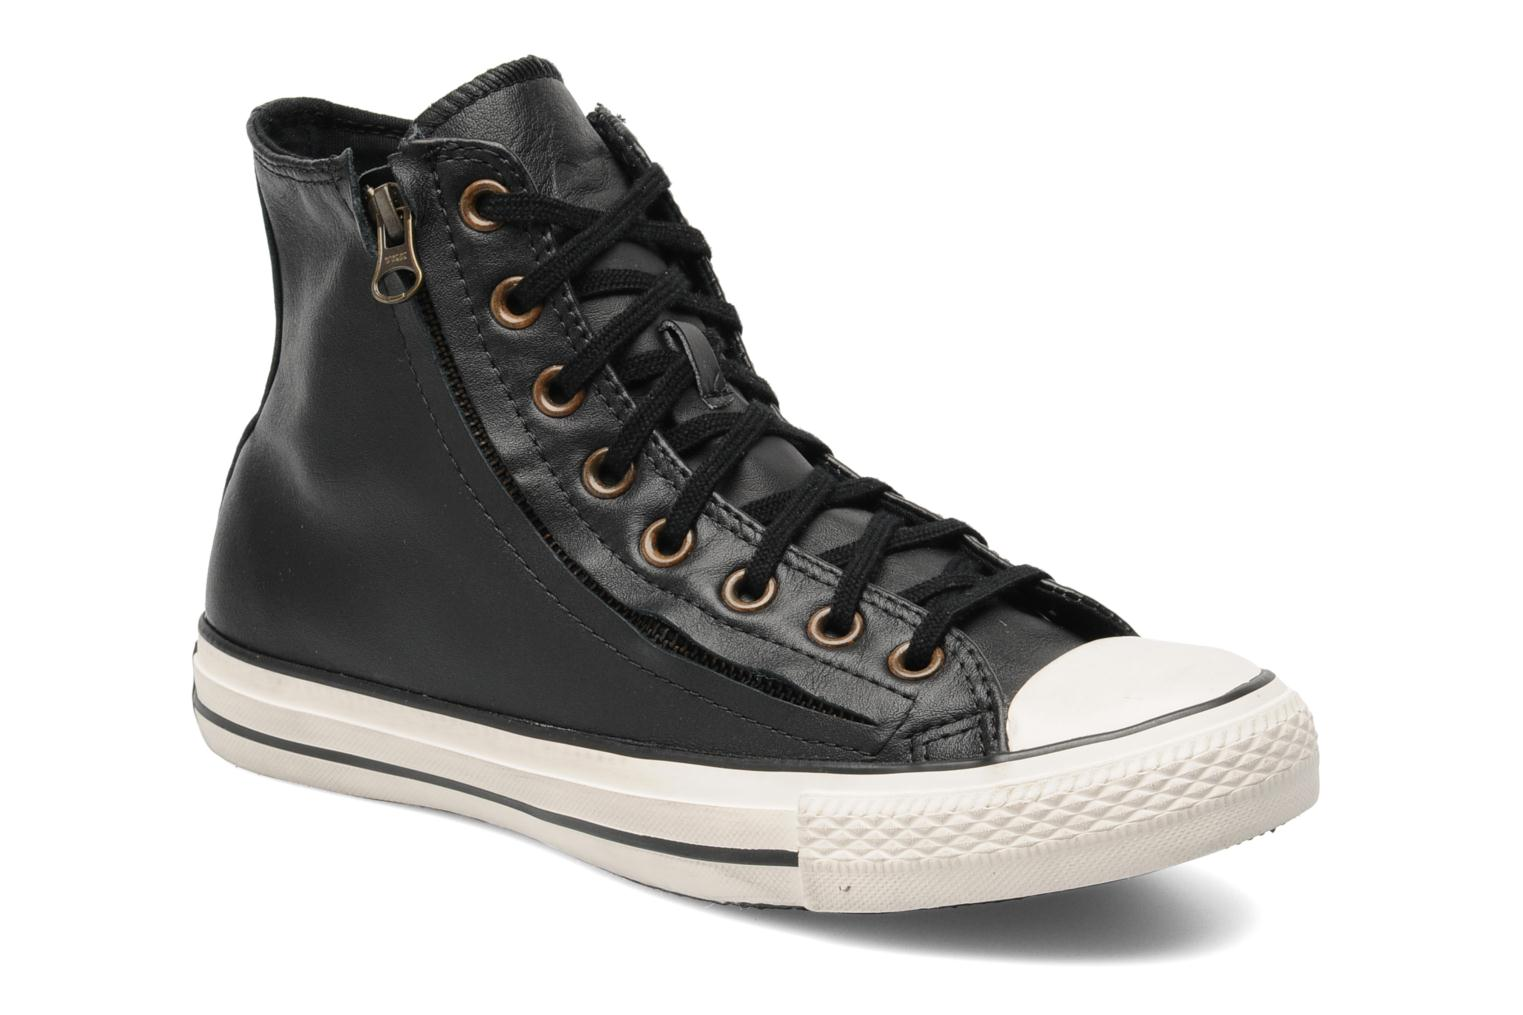 Baskets Converse Chuck Taylor All Star Rc Leather Double Zip Hi M Noir vue détail/paire